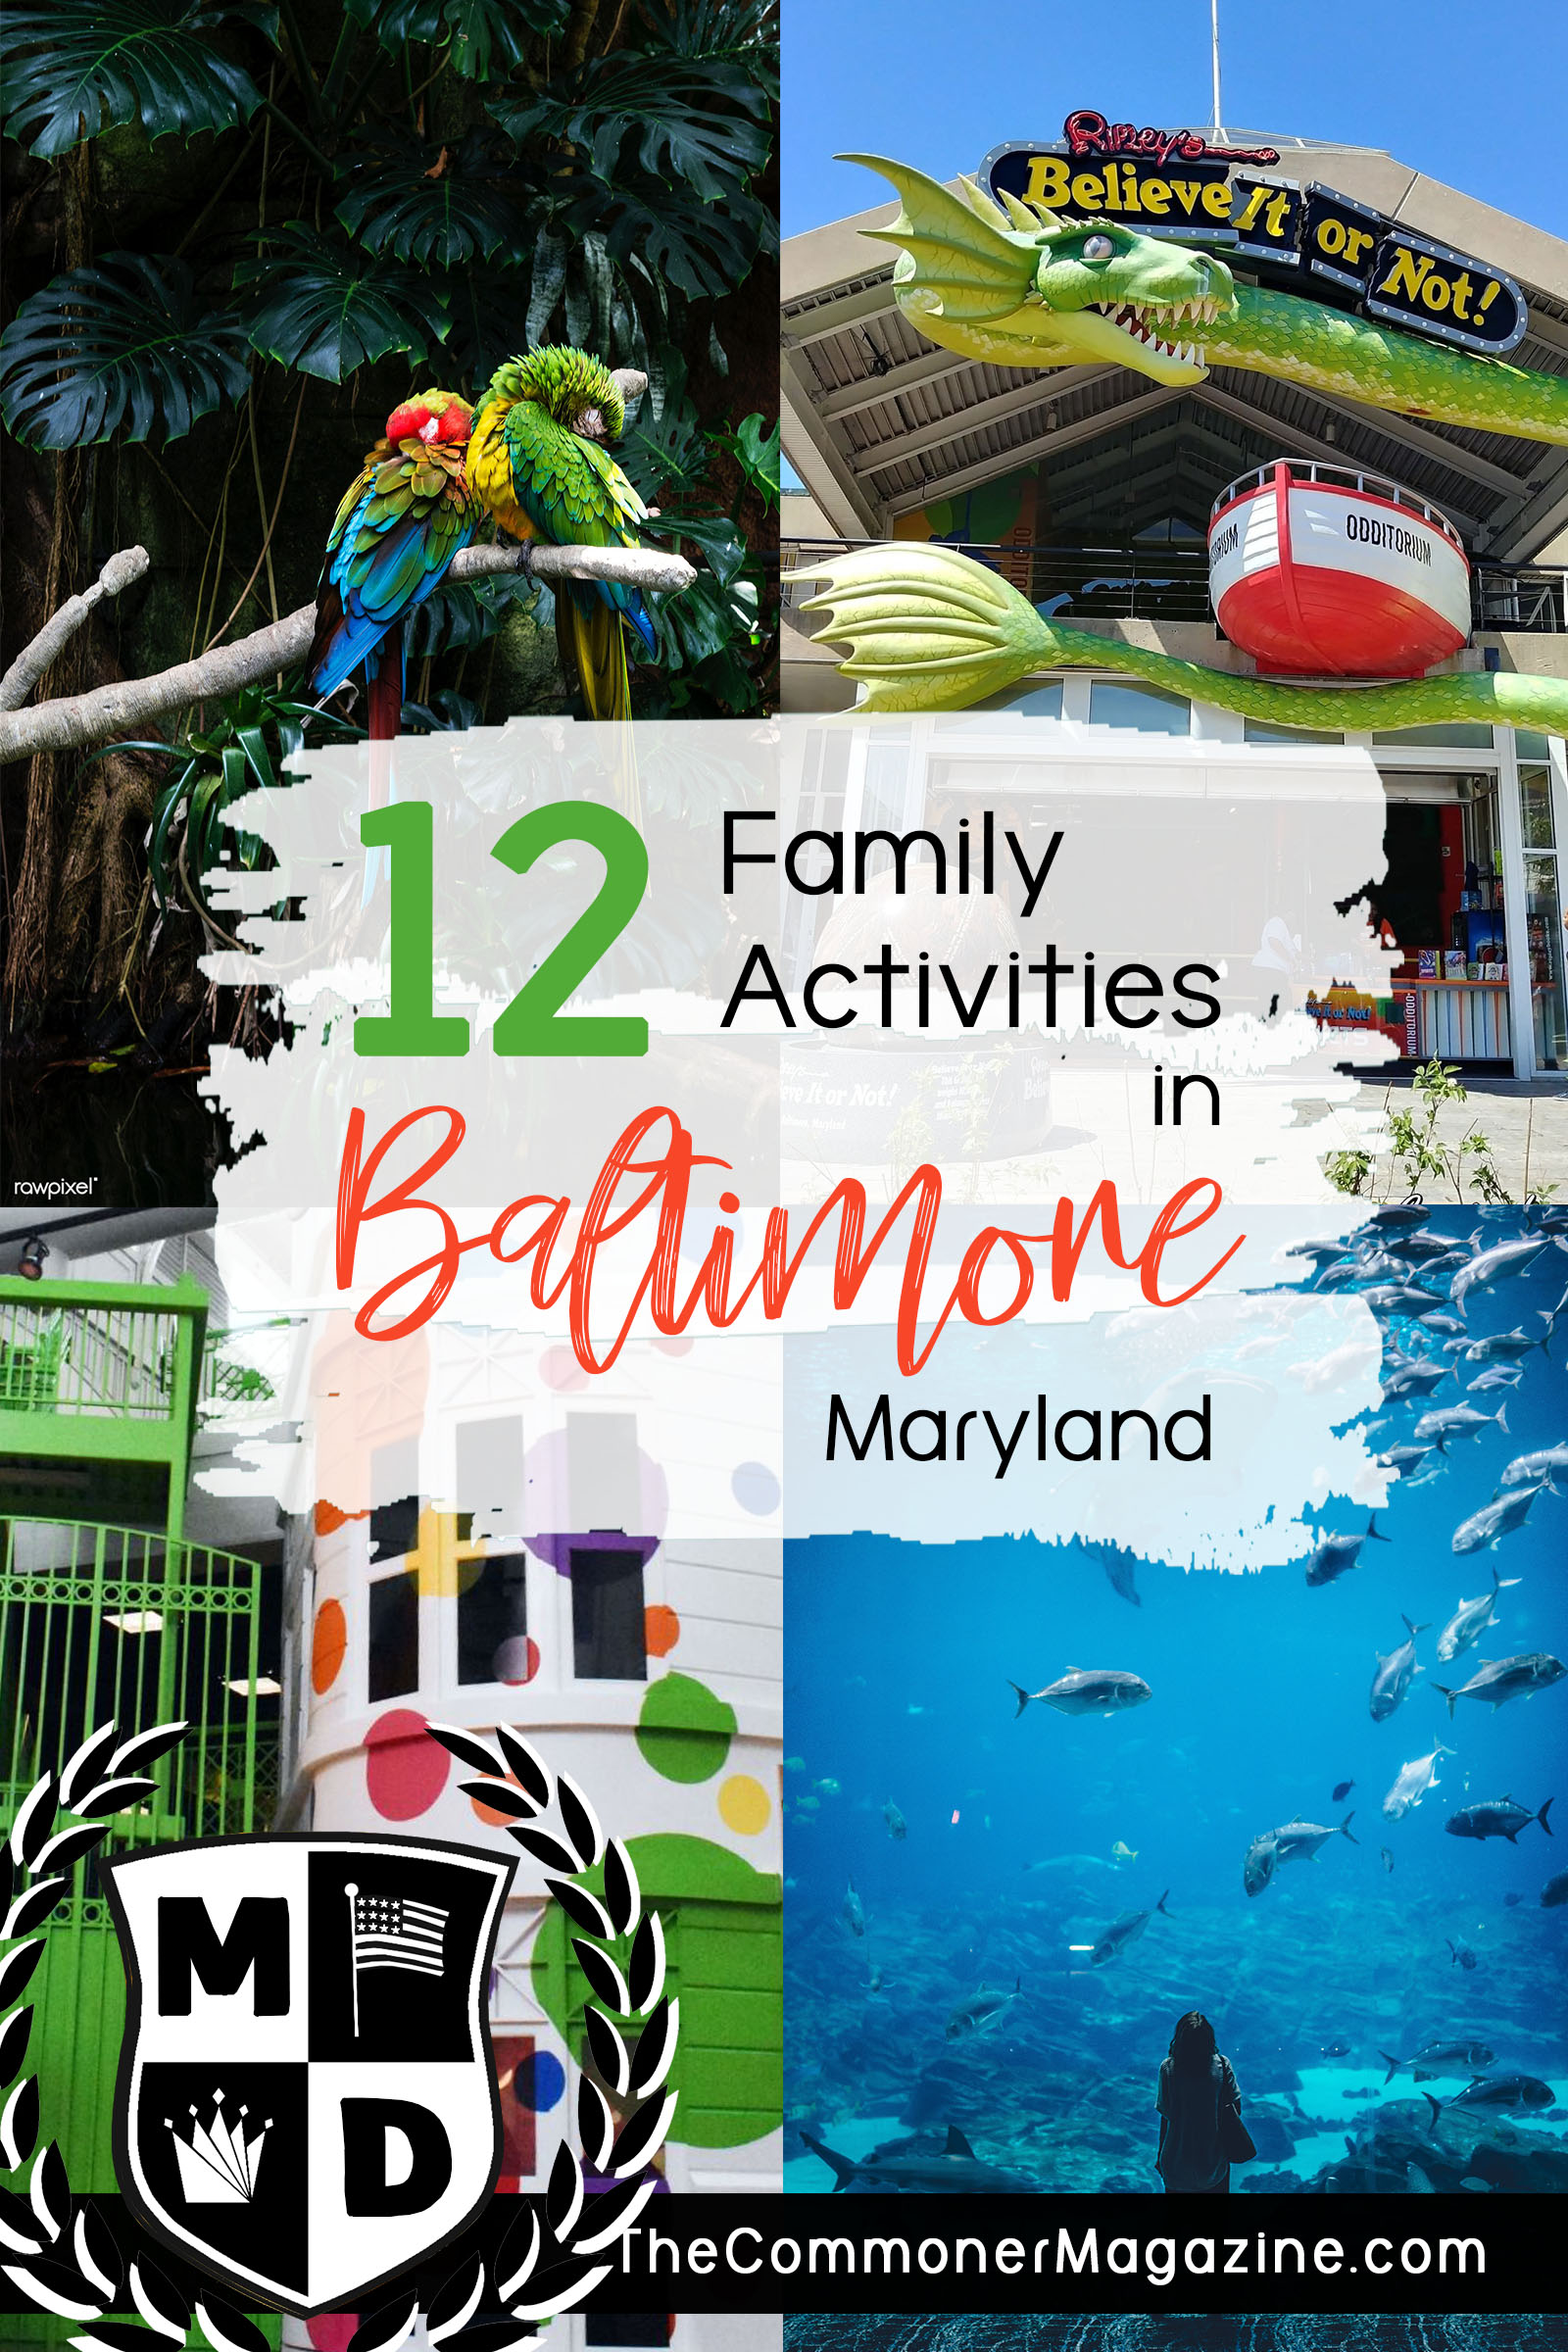 Looking for things to do in Baltimore? We've created a two-part series covering 12 fantastic, kid friendly activities for your next family vacation to Baltimore, Maryland. From museums to the National Aquarium, there's something to do in every season. The Commoner Magazine, full of USA travel tips from local experts. #Baltimore #Maryland #ThingstodoinBaltimore #NationalAquarium #USAtravel #Familytravel #travelwithkids #kidsactivities #USA #eastcoast #eastcoasttravel